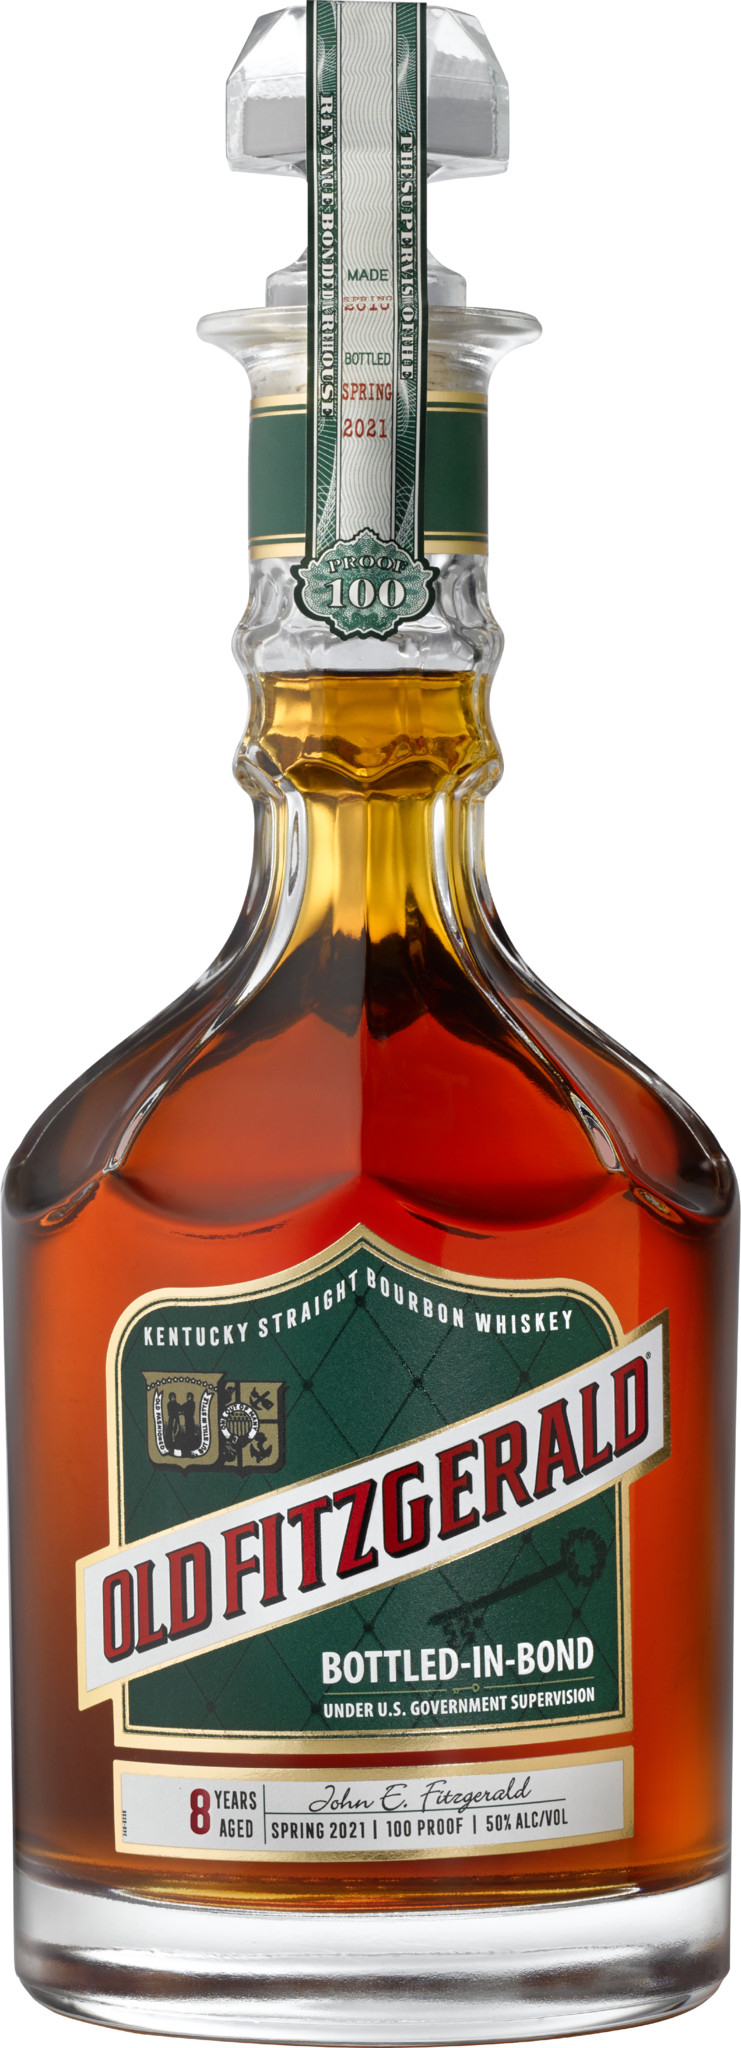 Old Fitz Bottle Spring 2021 - Heaven Hill Distillery Announces Spring 2021 Edition of the Old Fitzgerald Bottled-in-Bond Series